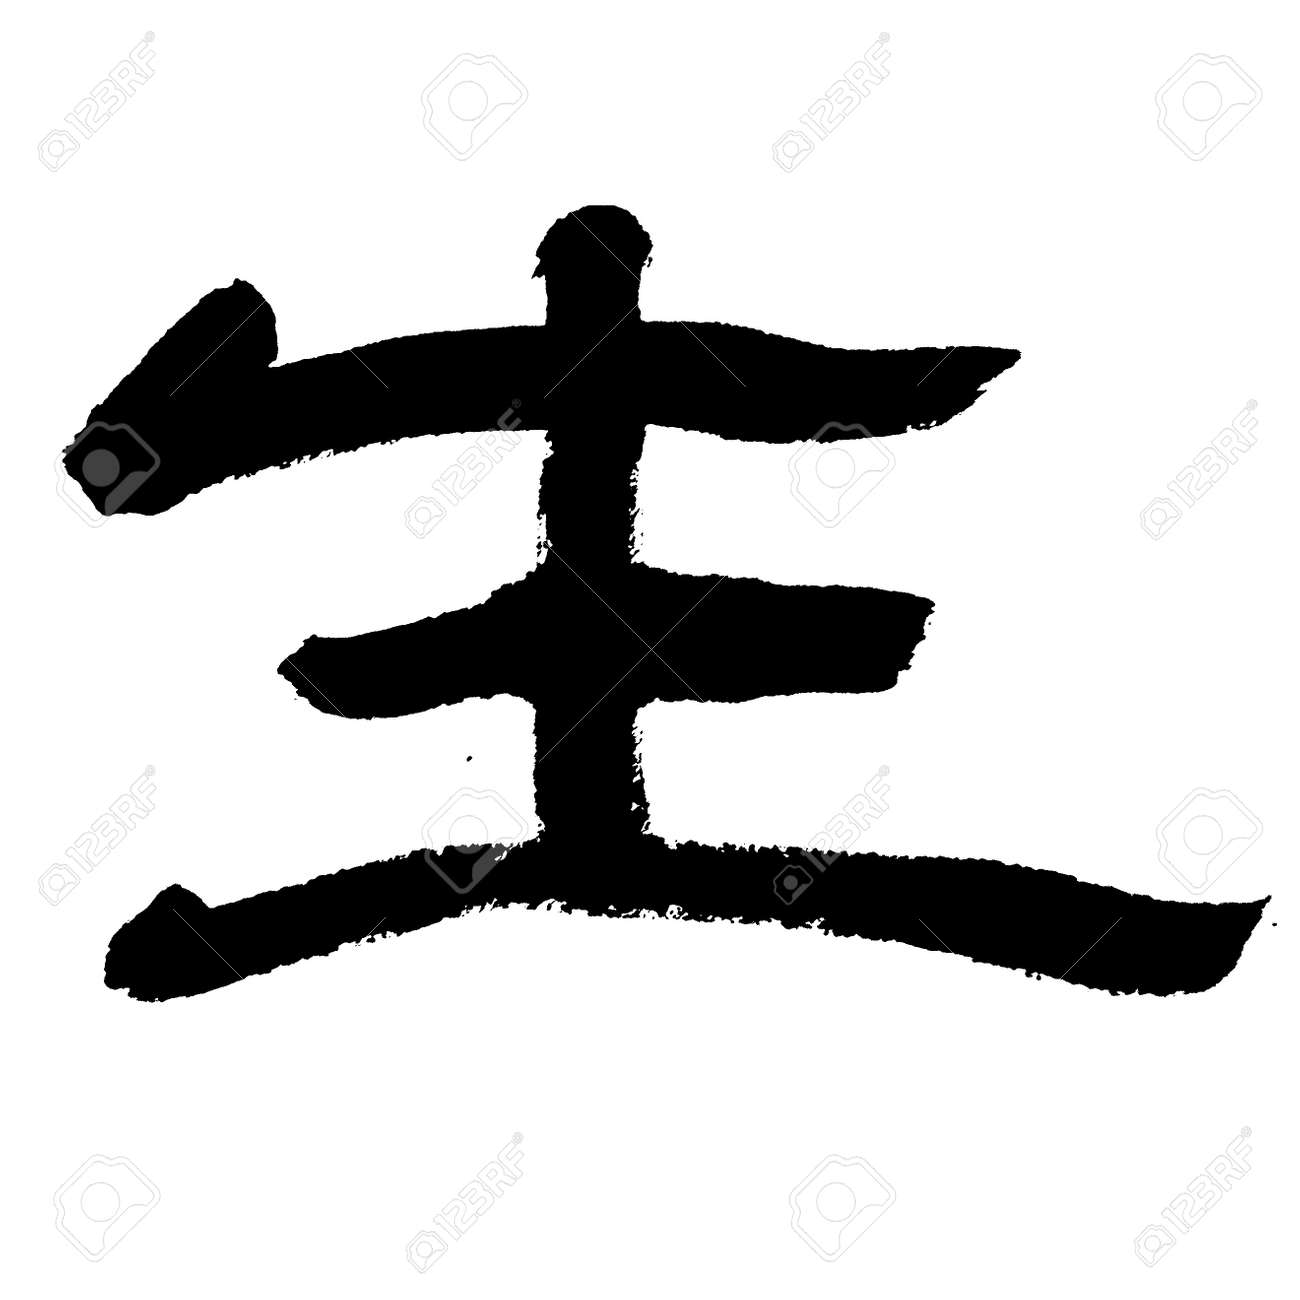 Illustration of black Chinese calligraphy. word for